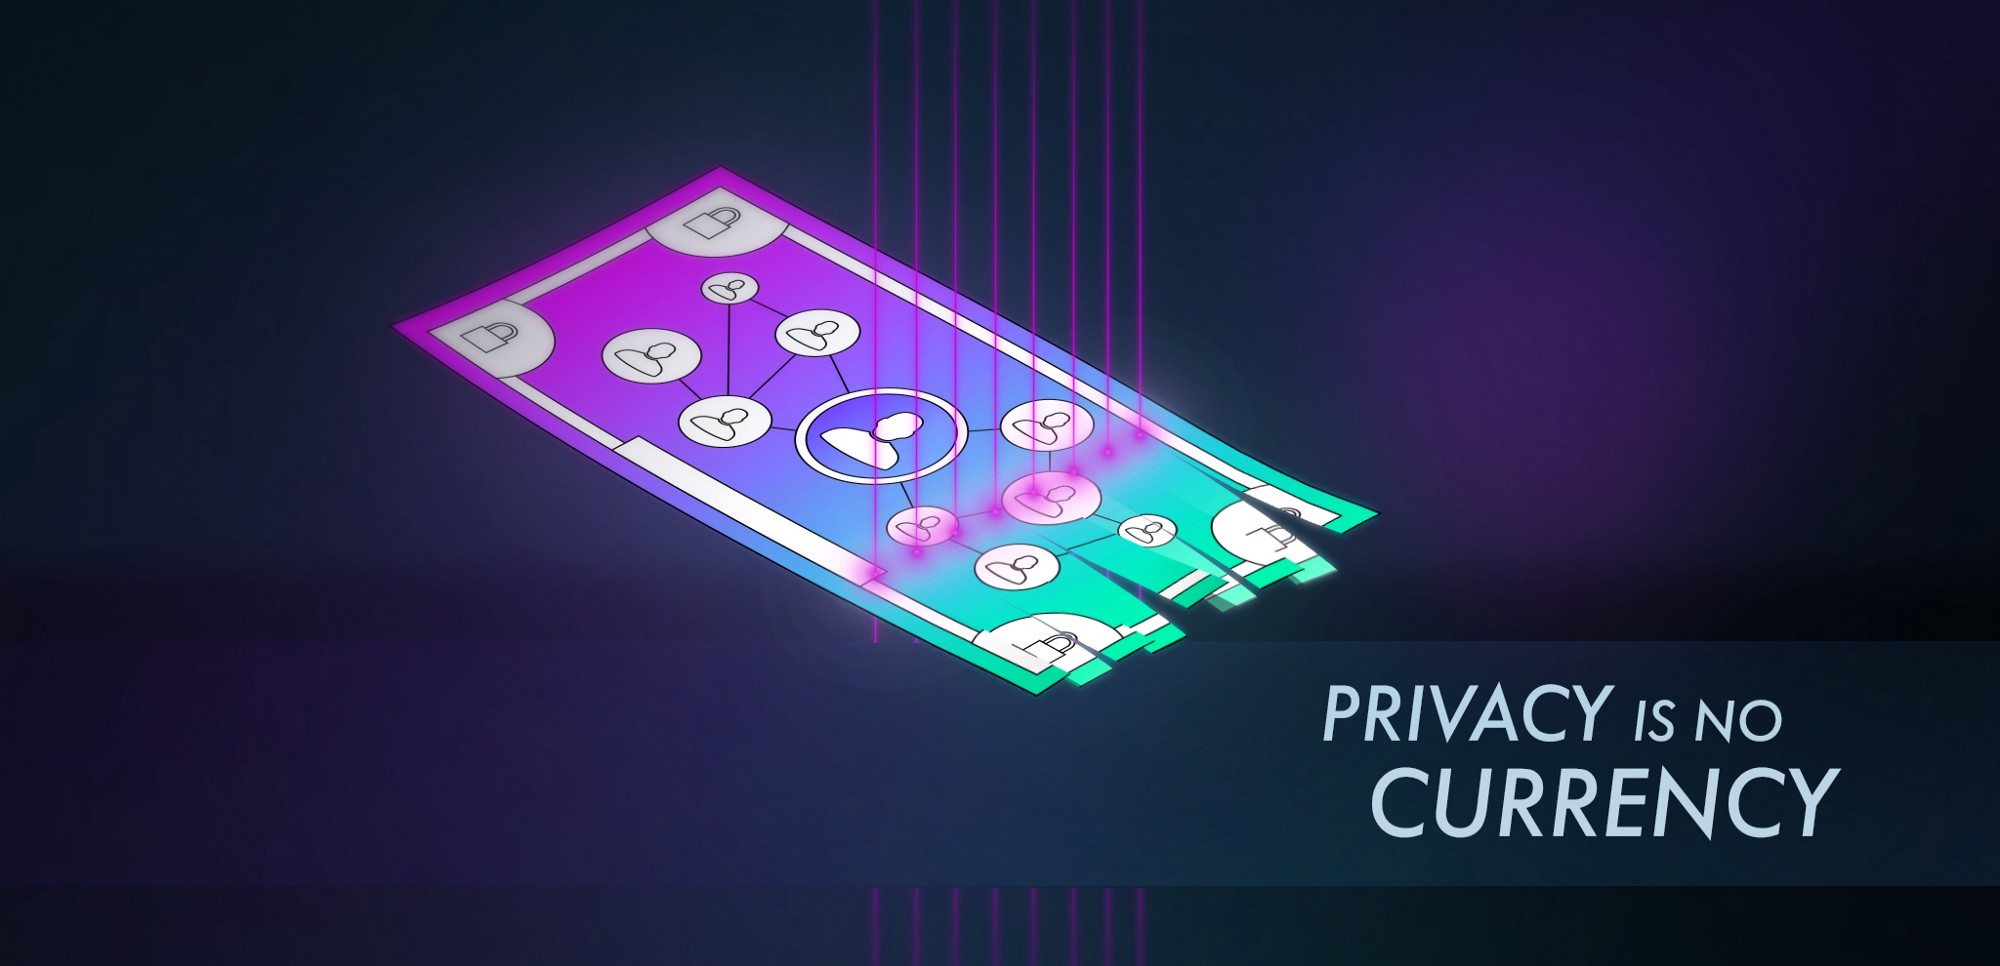 privacy is not a currency iota